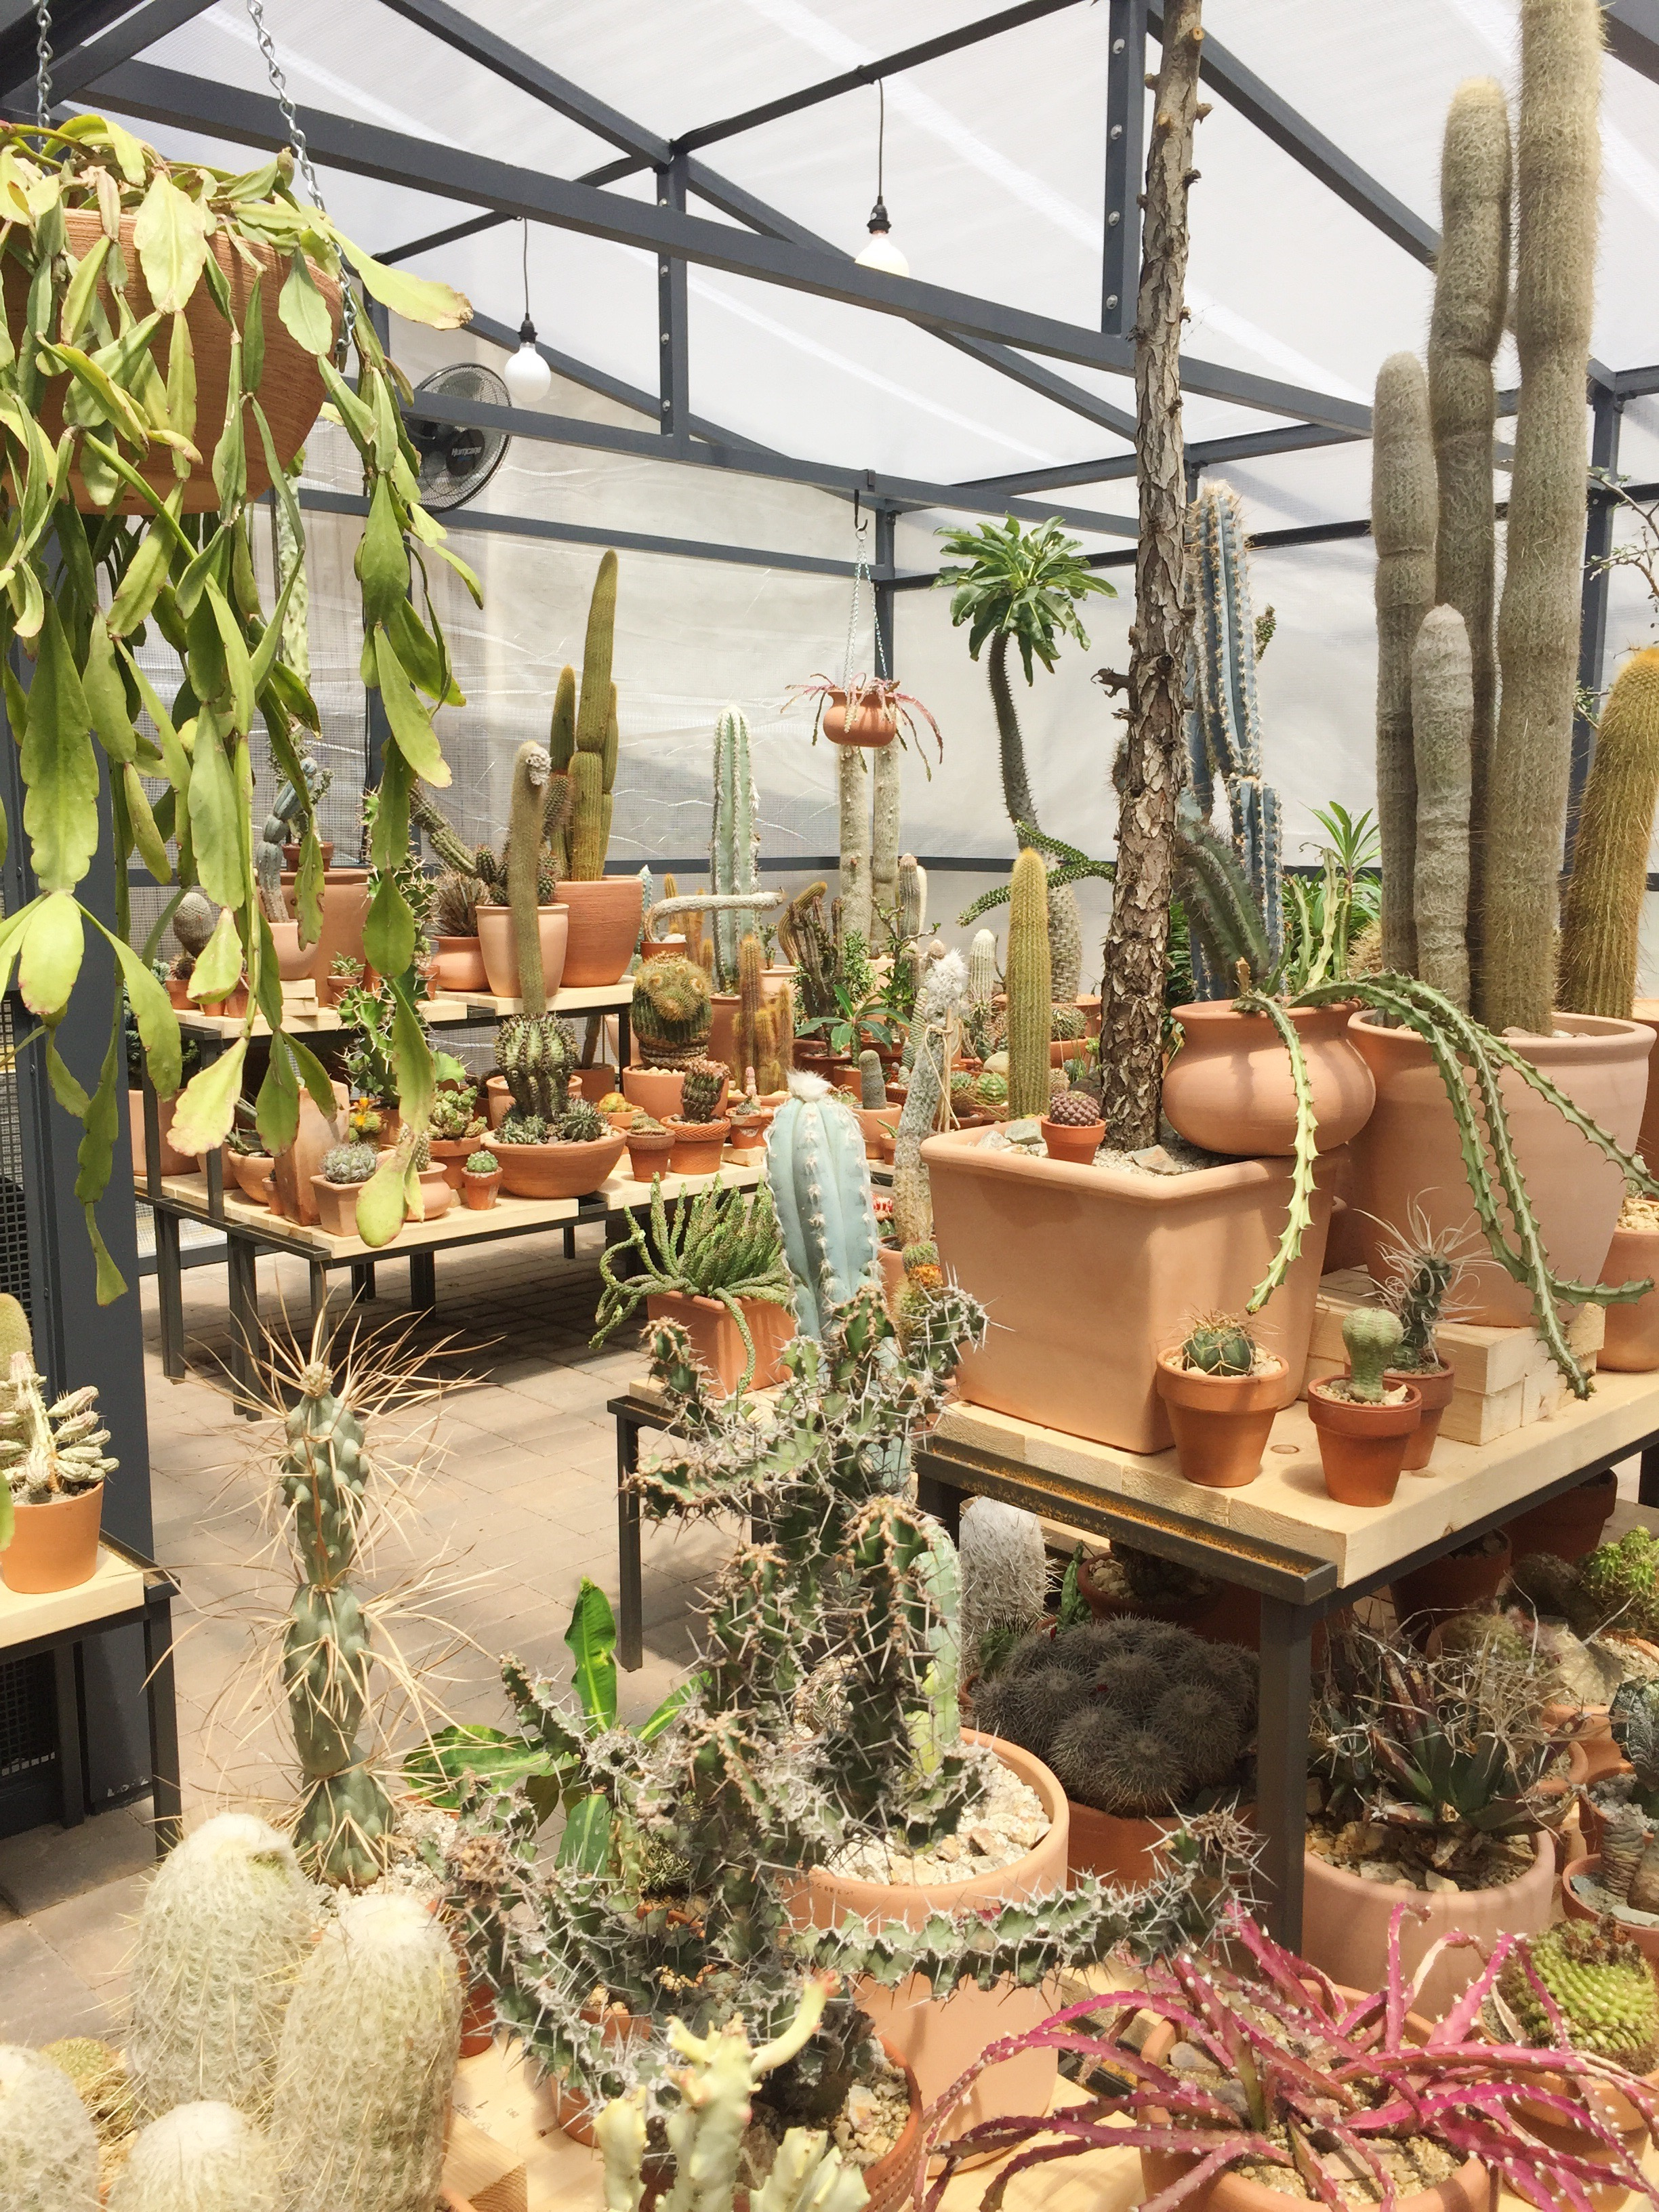 nyc s coolest new pop up shop is a greenhouse with 1 000 cacti